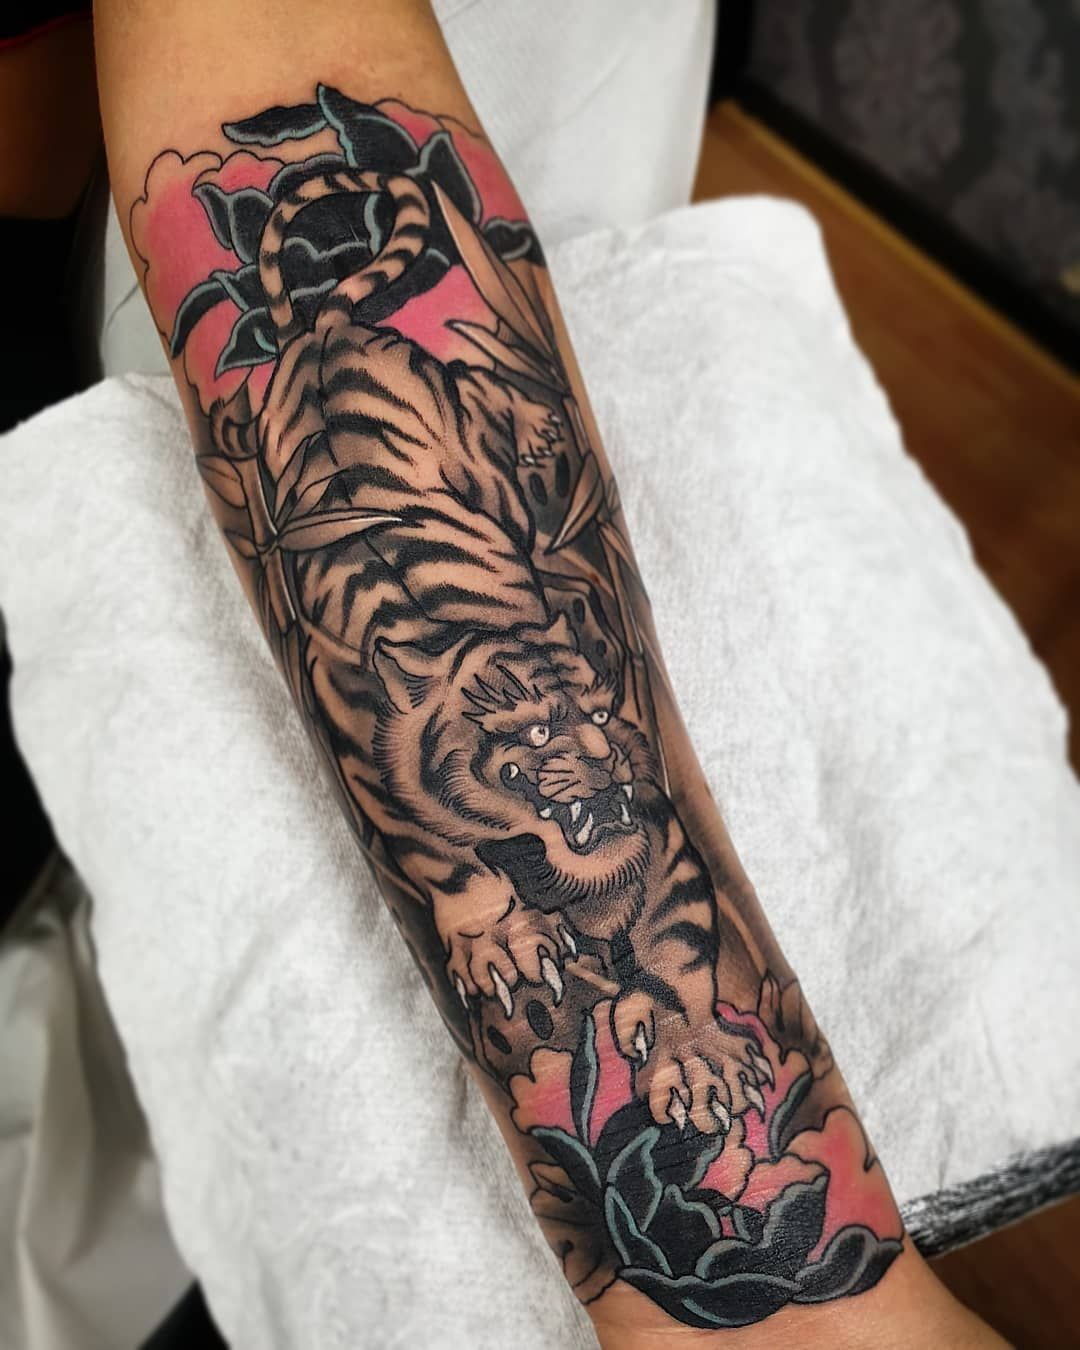 101 Amazing Japanese Tiger Tattoo Designs You Need To See!   Outsons   Men's Fashion Tips And Style Guide For 2020